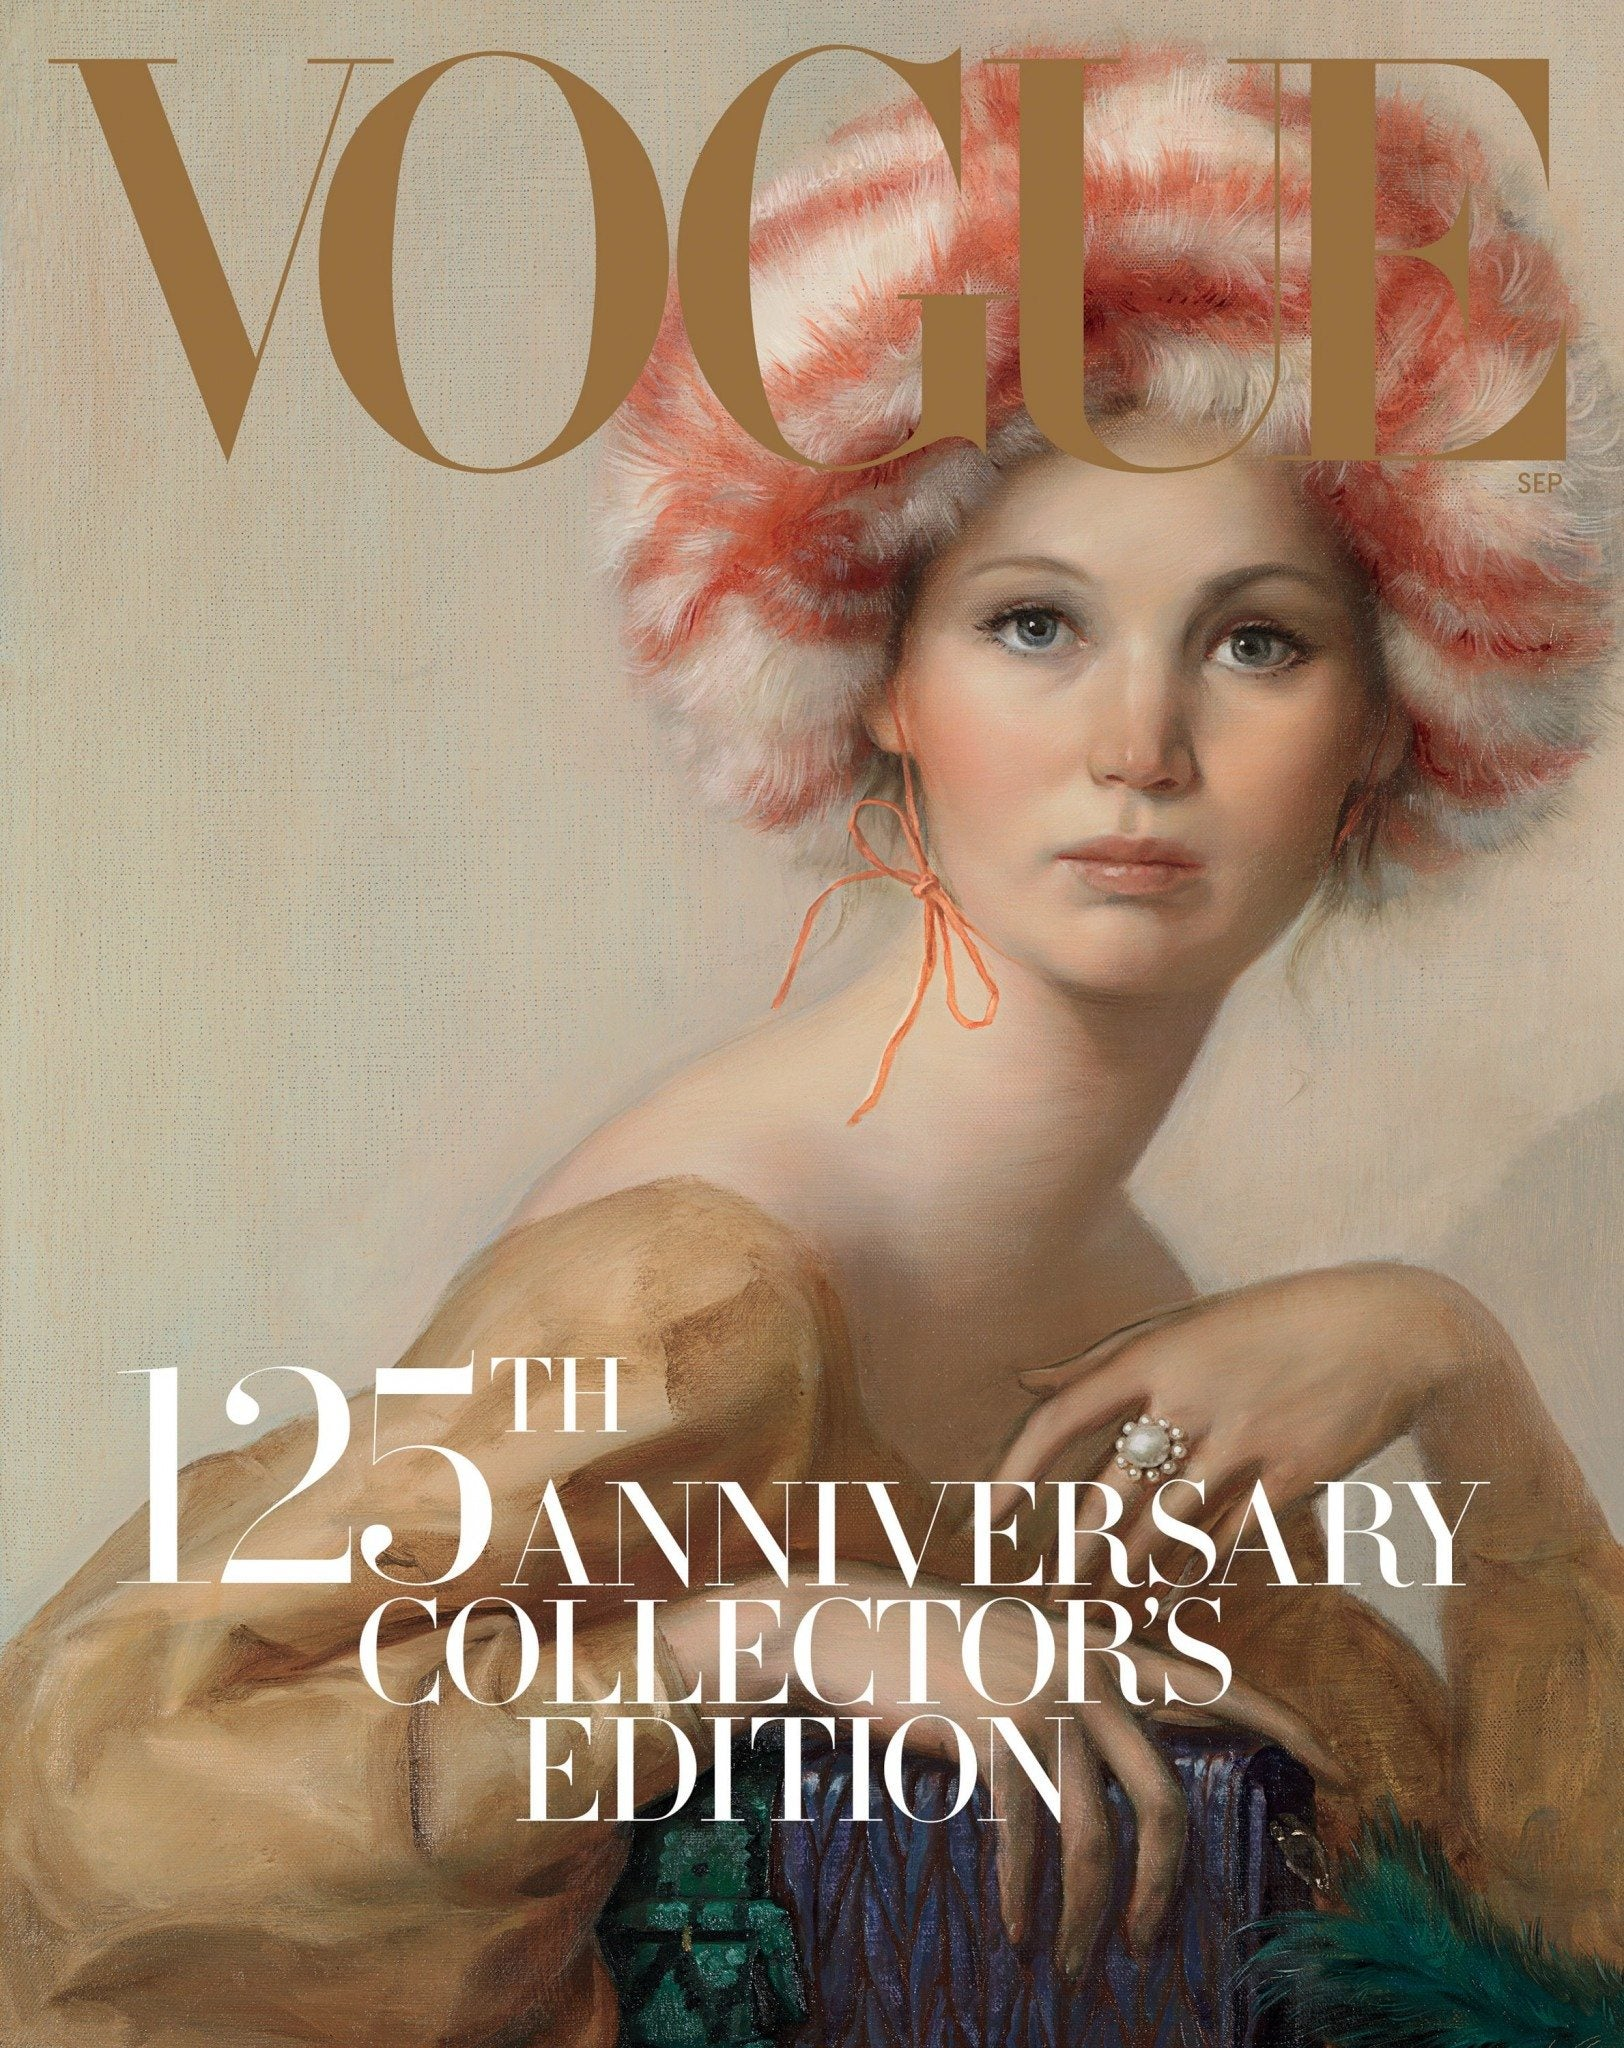 jlaw-vogue-125th-edition